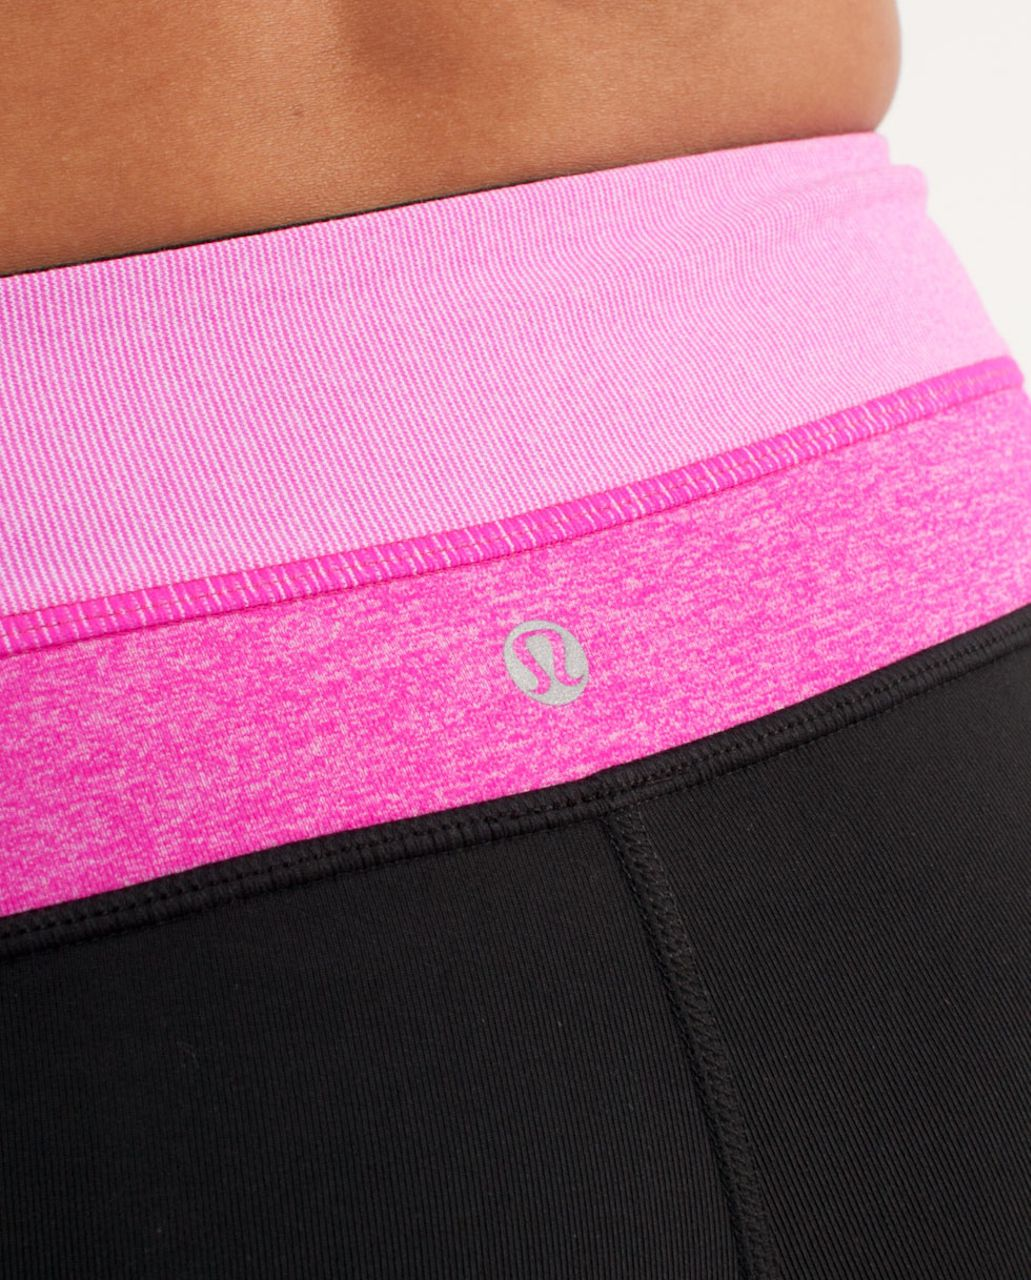 Lululemon Groove Short - Black /  Paris Pink White Microstripe